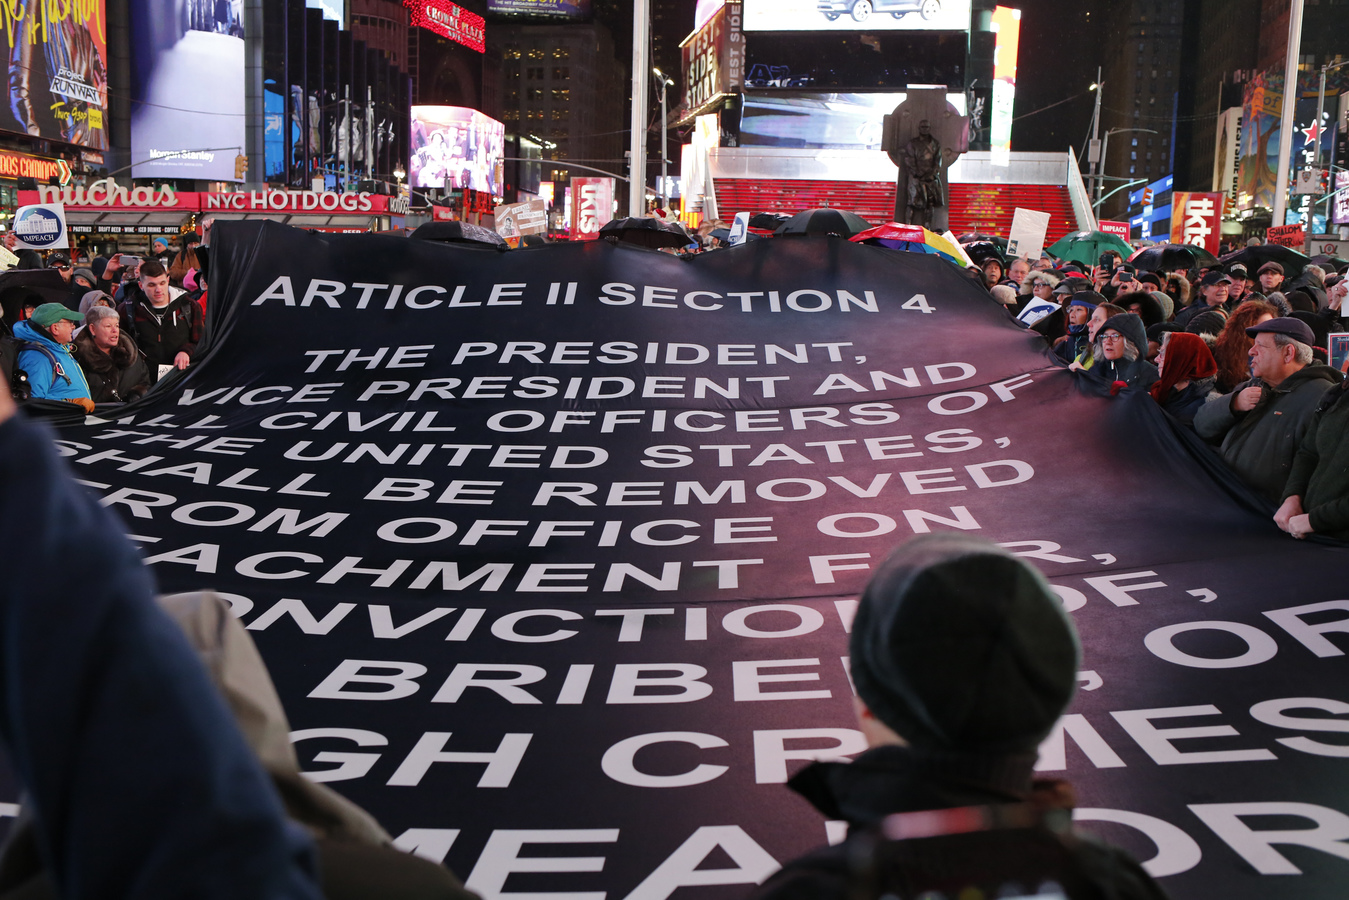 USA 2017- Impeachment Eve Times Square 12/17/19